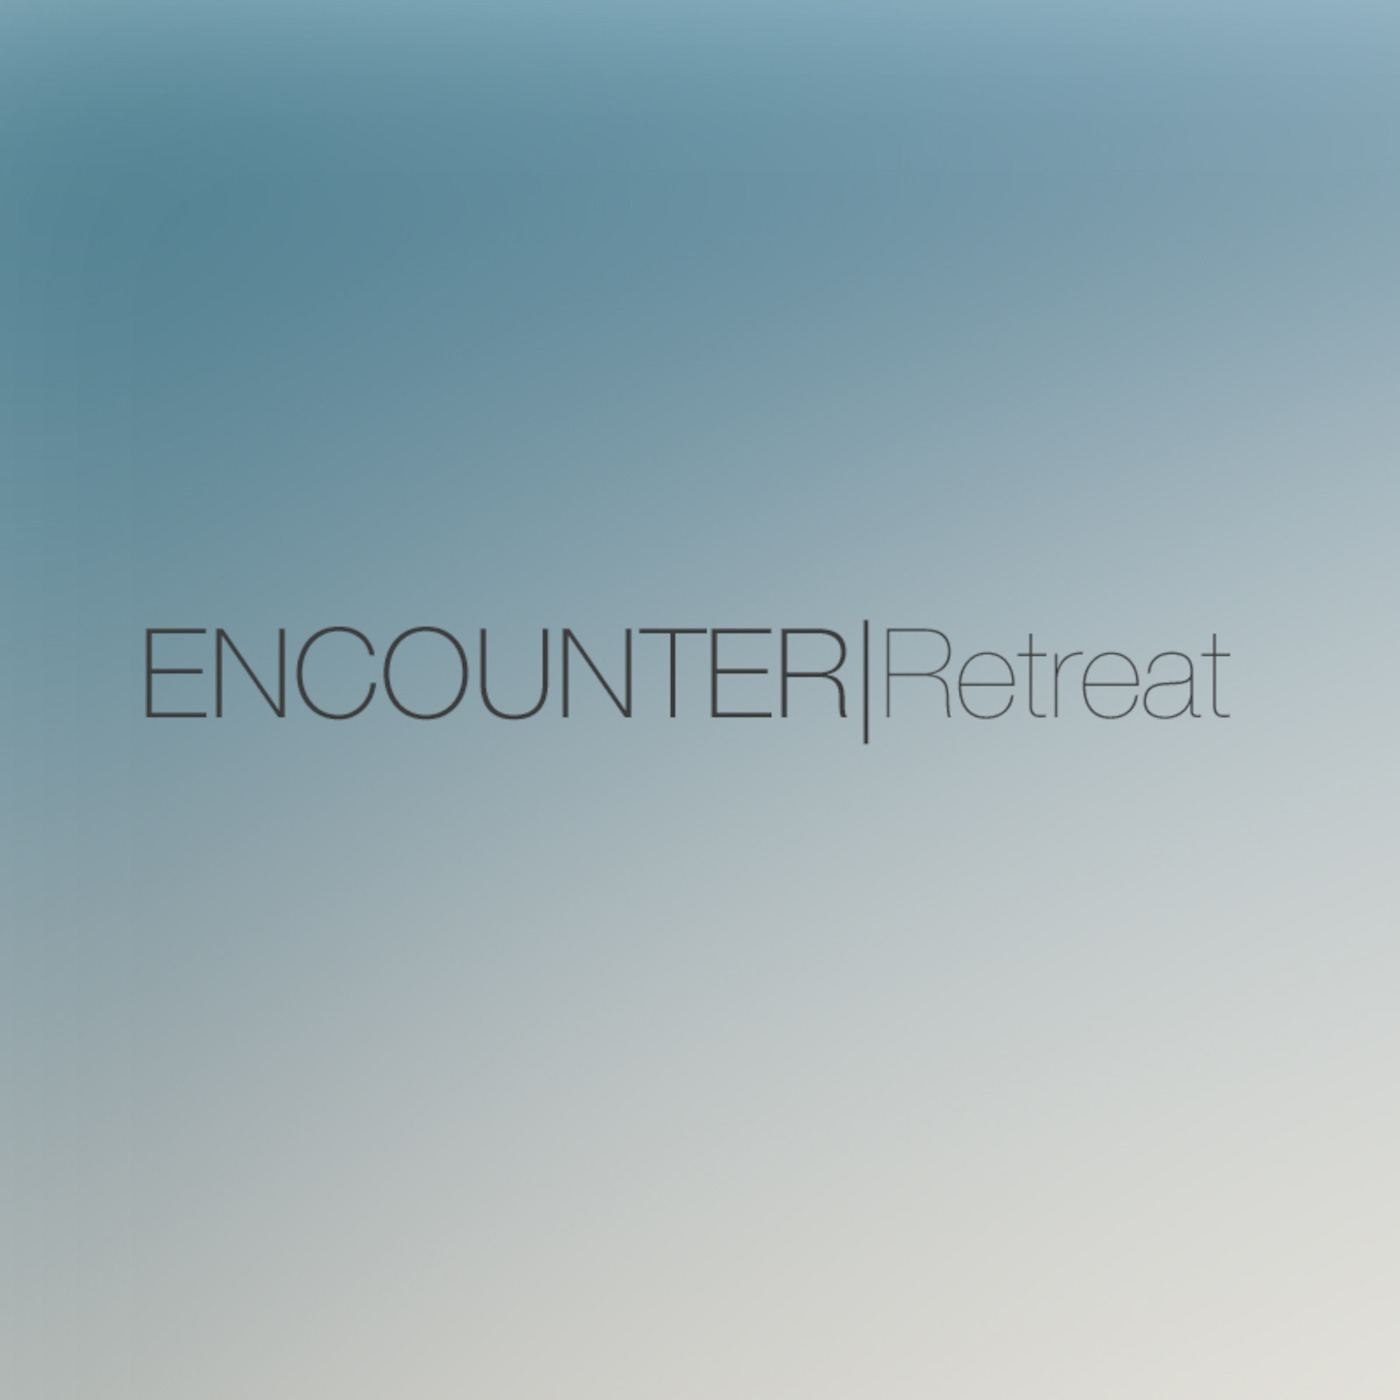 Encounter|Retreat